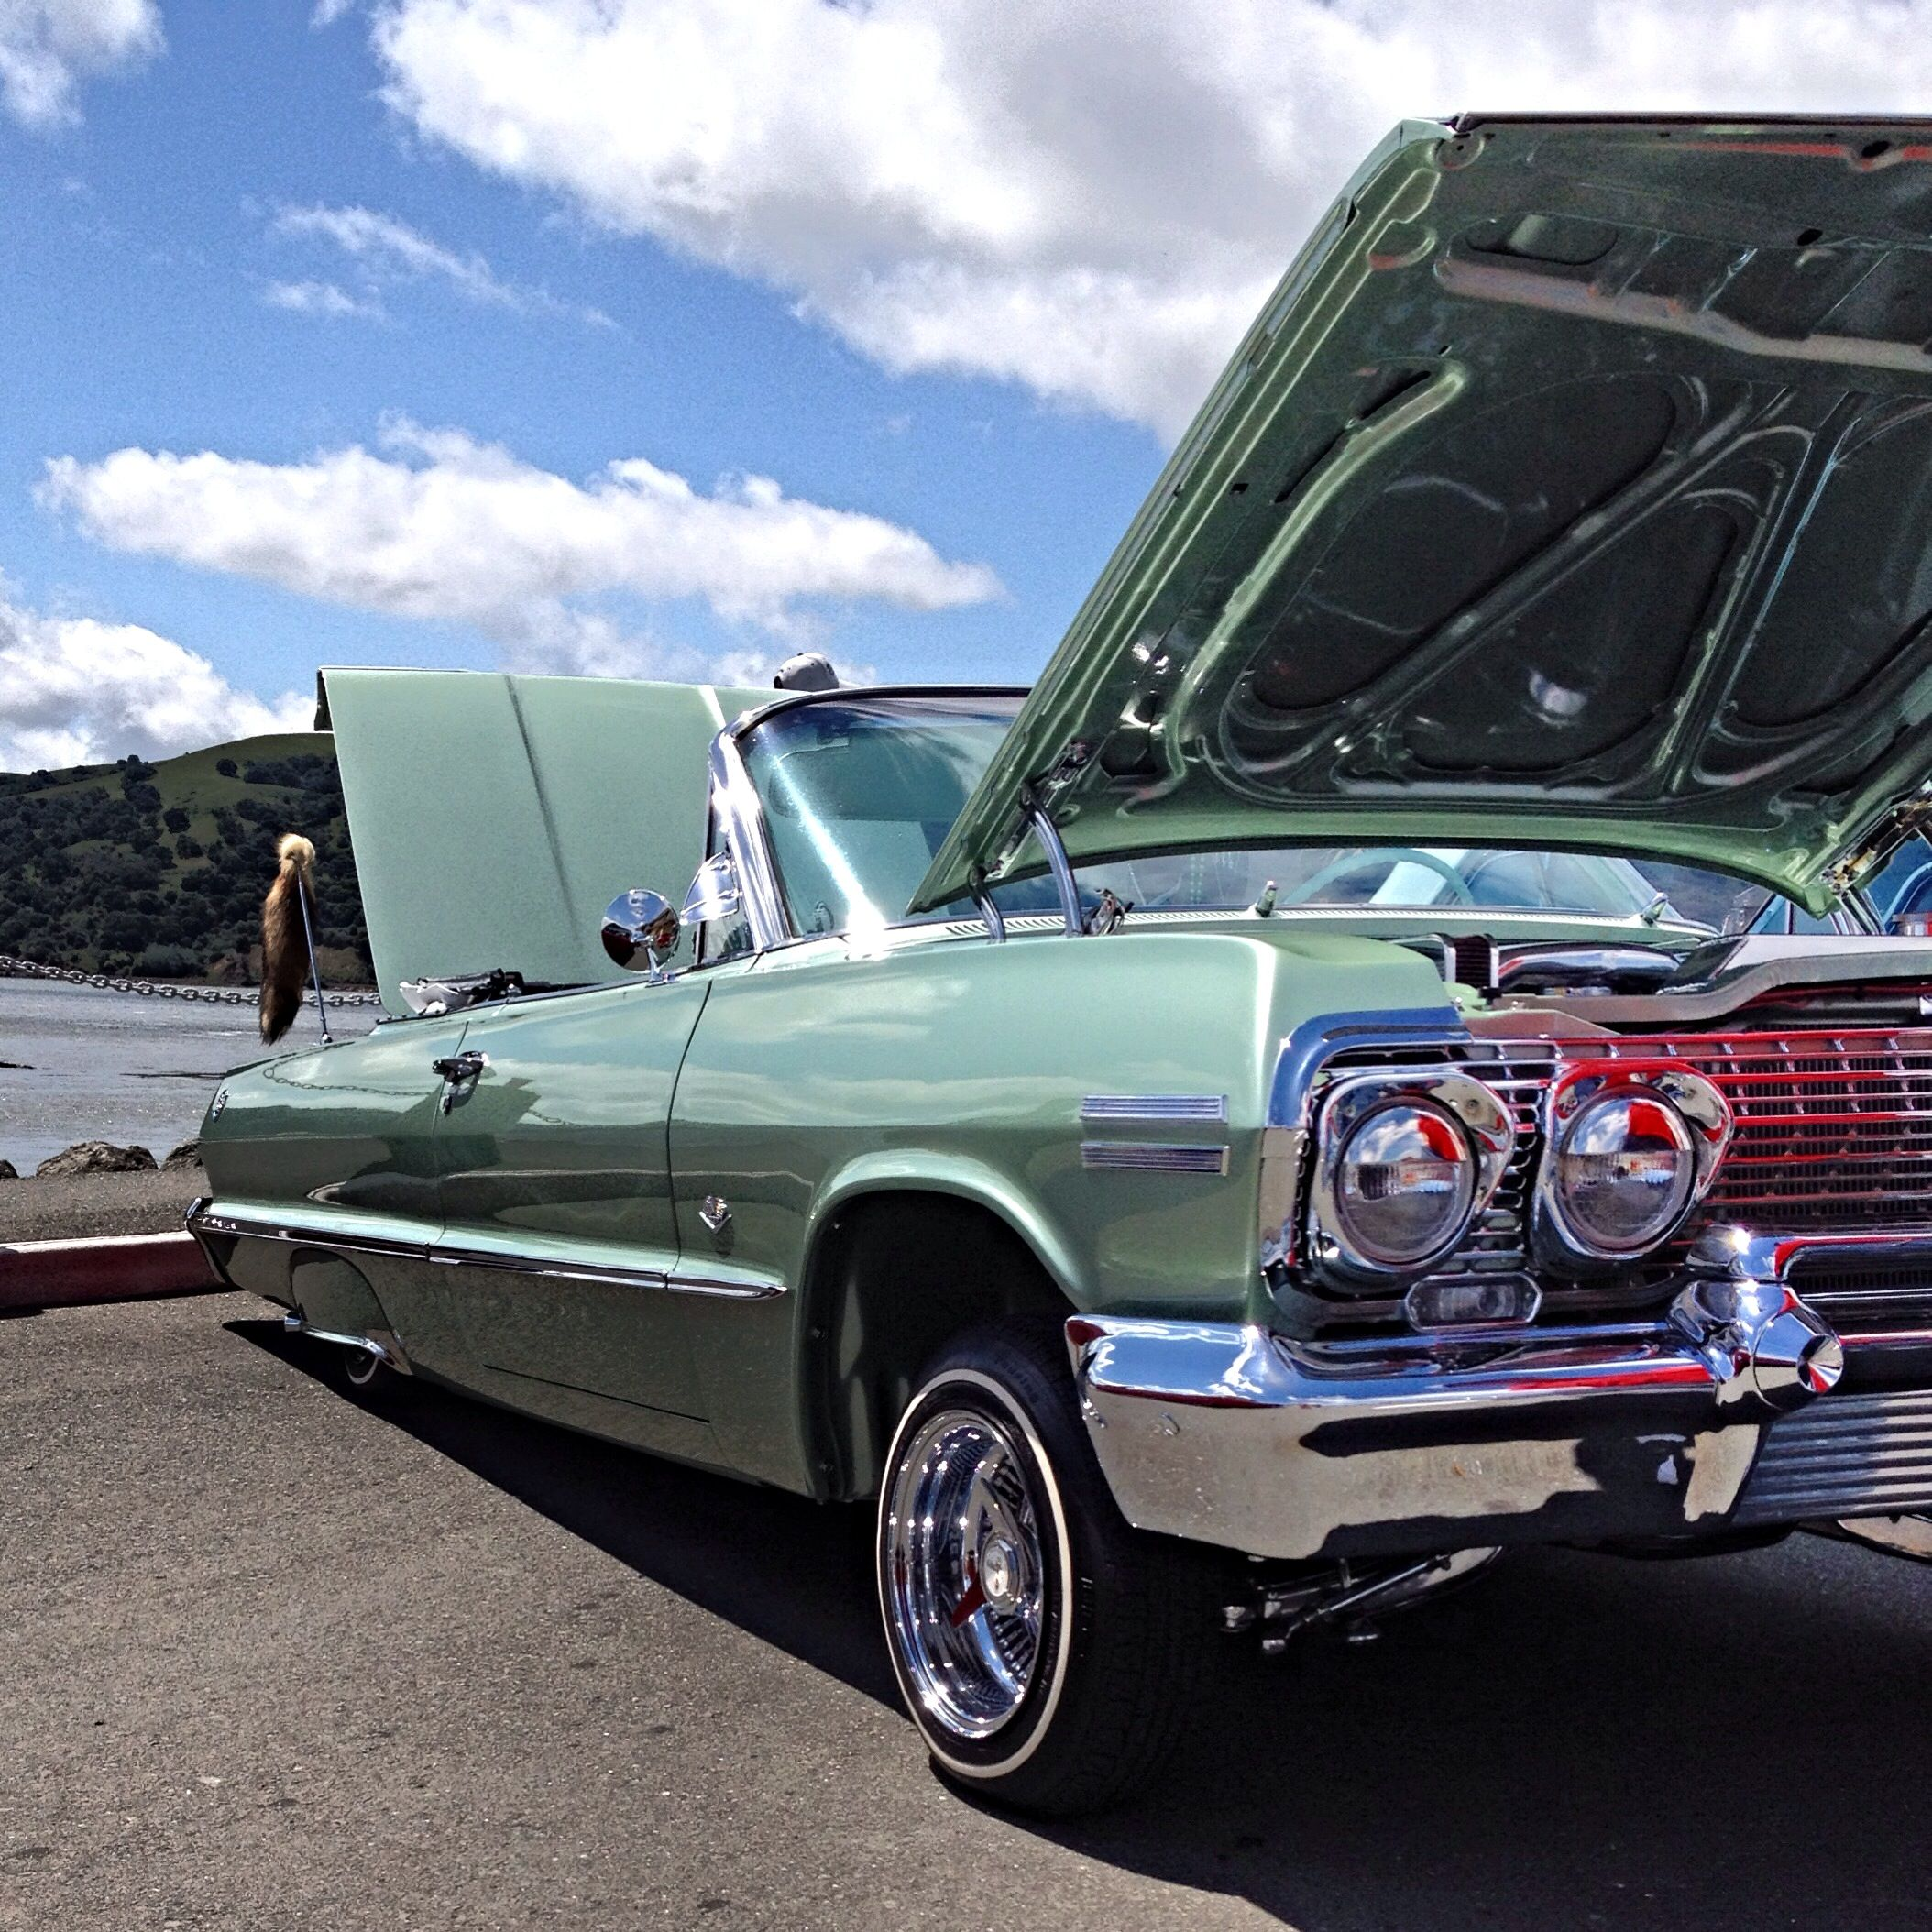 1963 Impala SS Convertibles | Low rider | Pinterest | Convertible ...